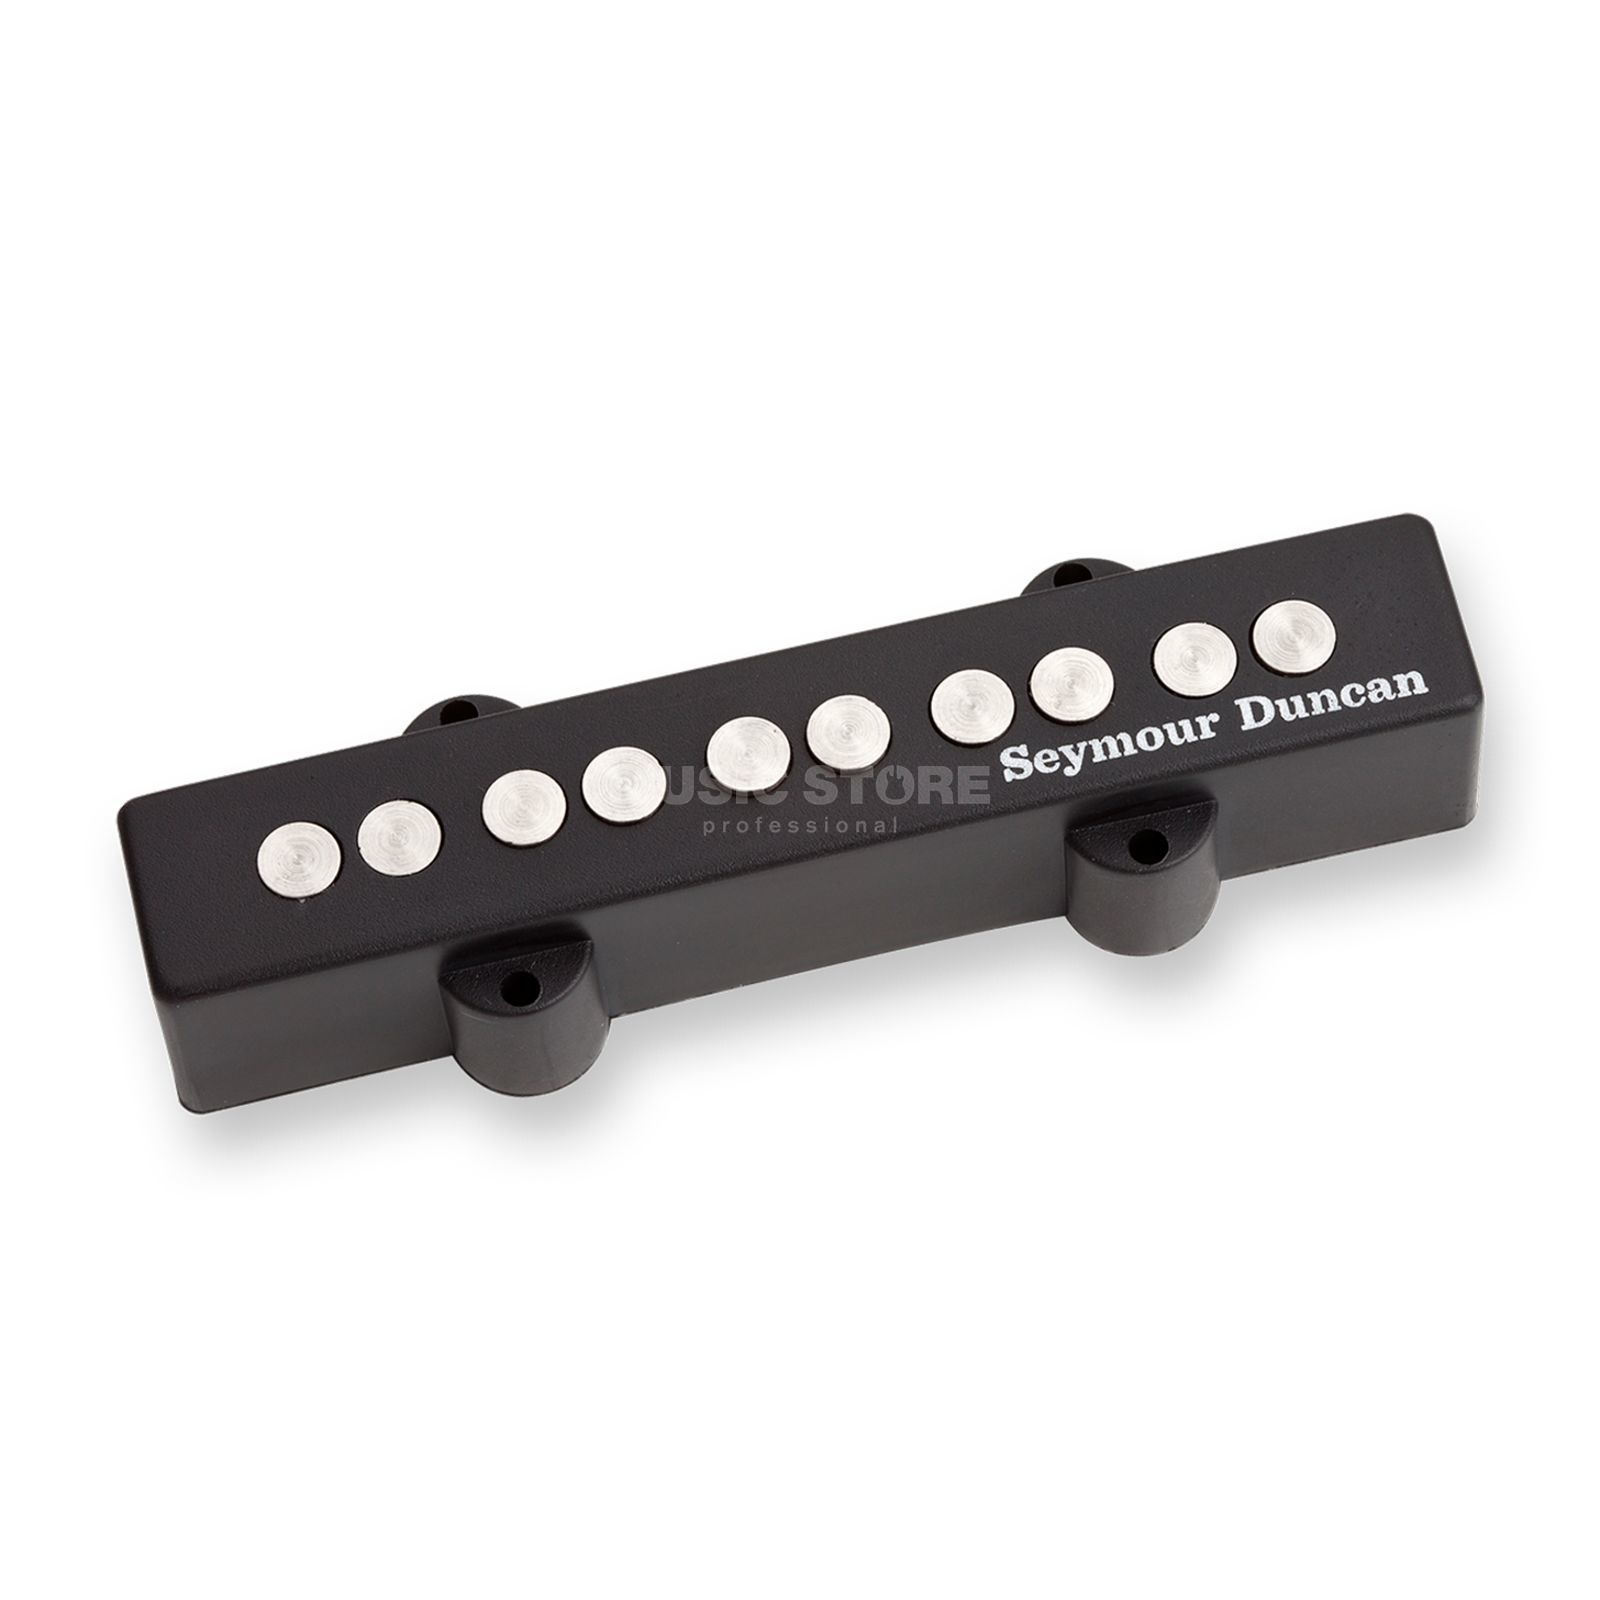 Seymour Duncan Quarter Pound J-Bass SJ5-3N Neck 5-String Изображение товара